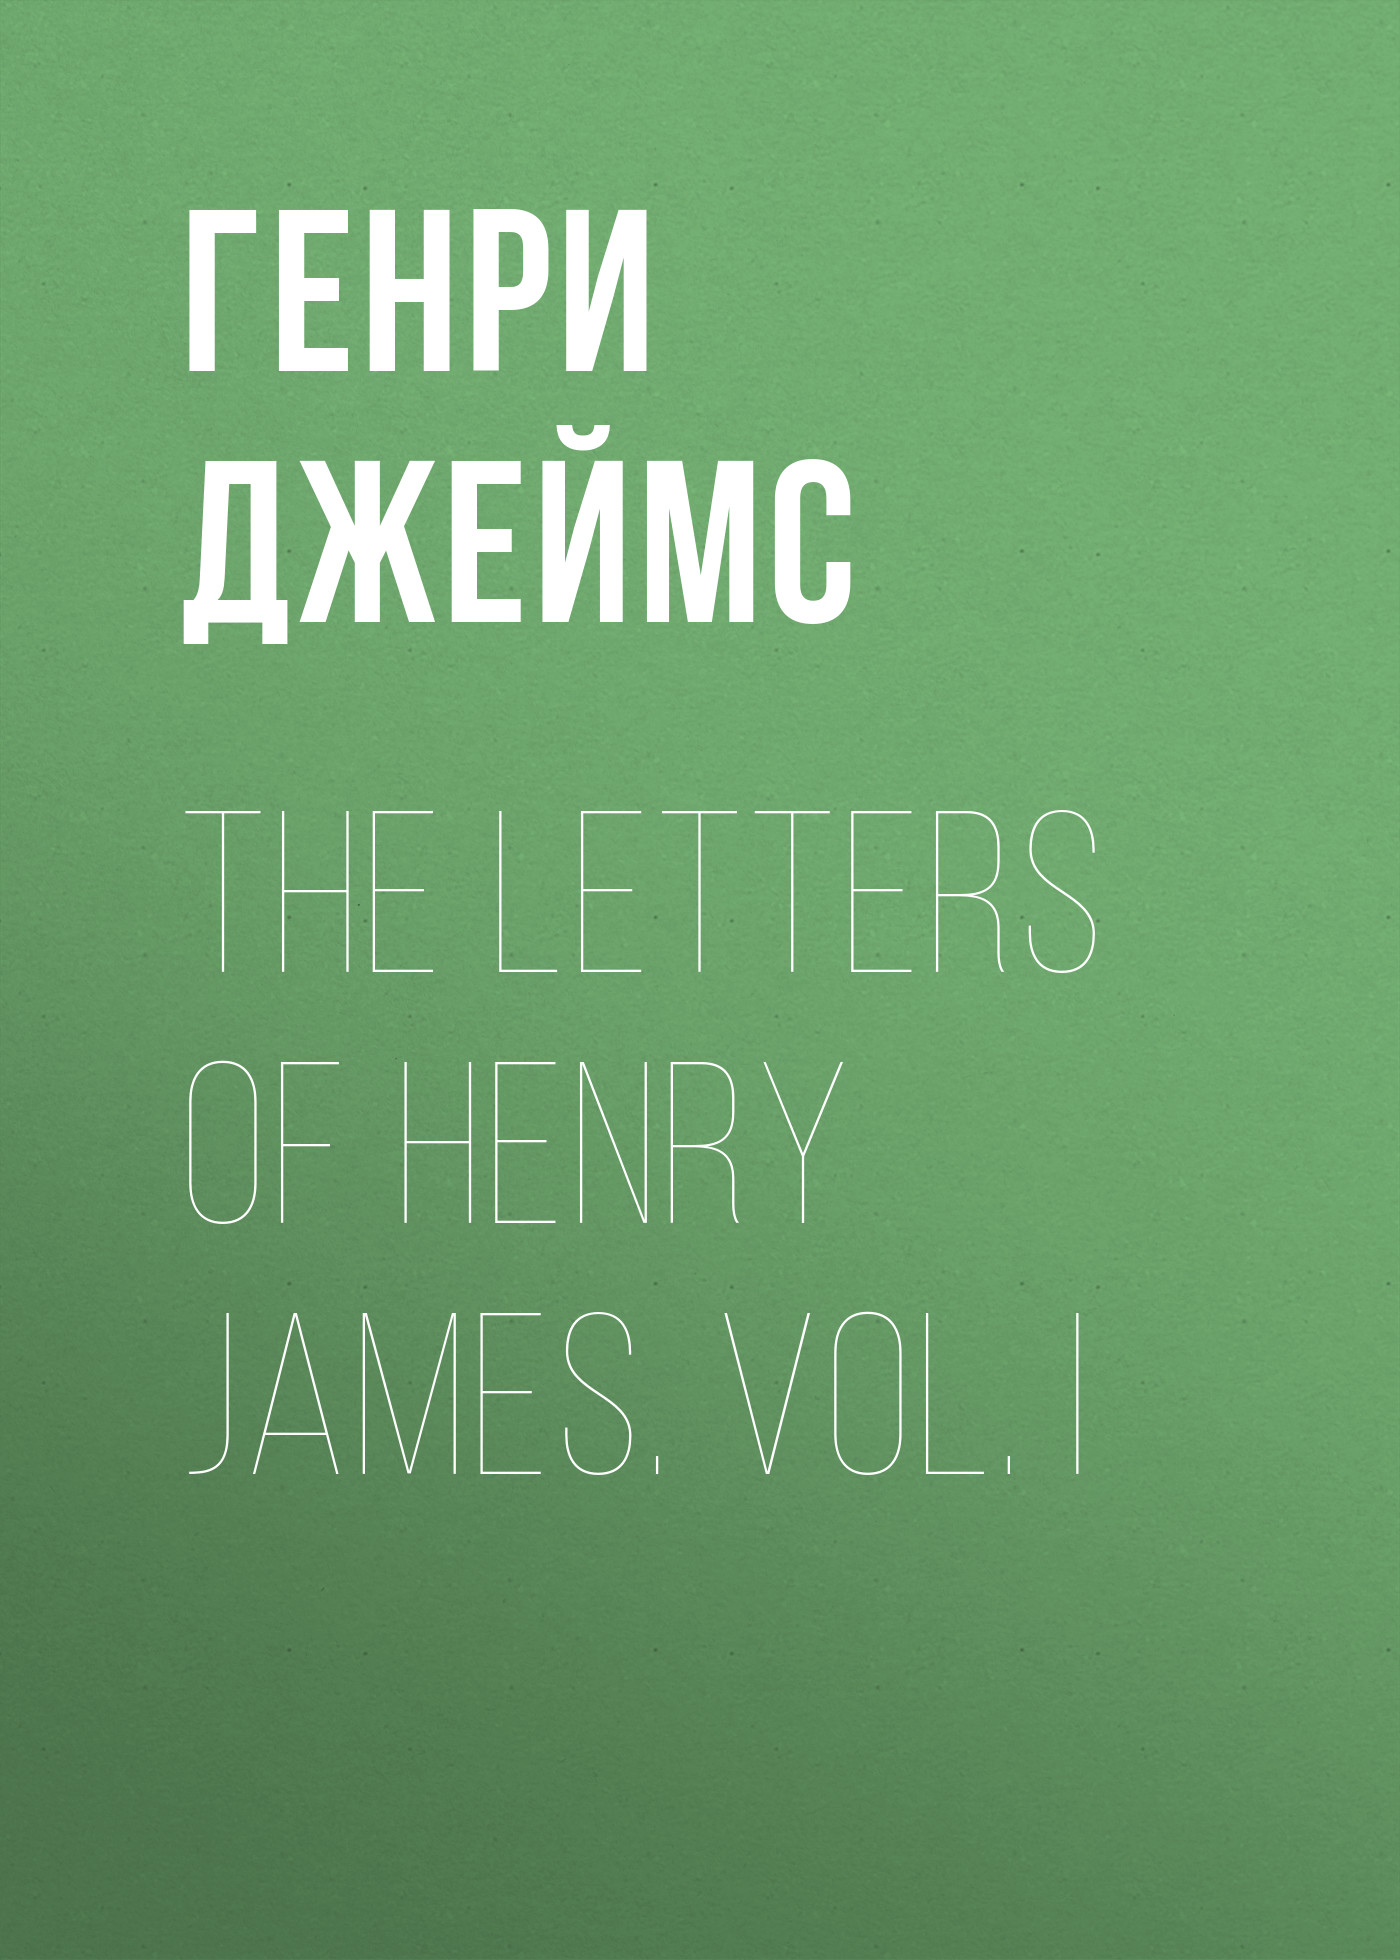 Генри Джеймс The Letters of Henry James. Vol. I henry james confidence